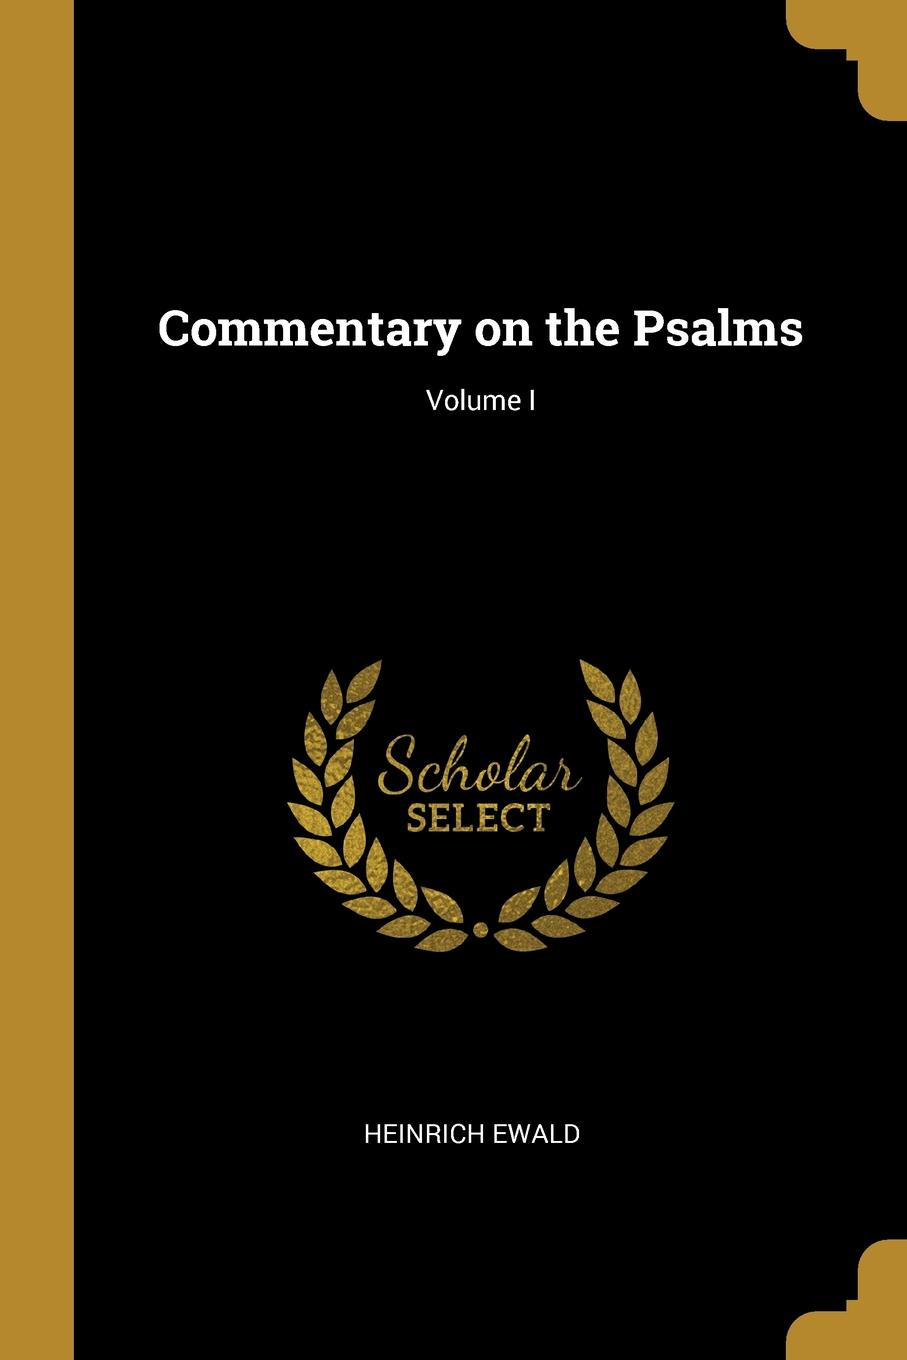 Heinrich Ewald. Commentary on the Psalms; Volume I